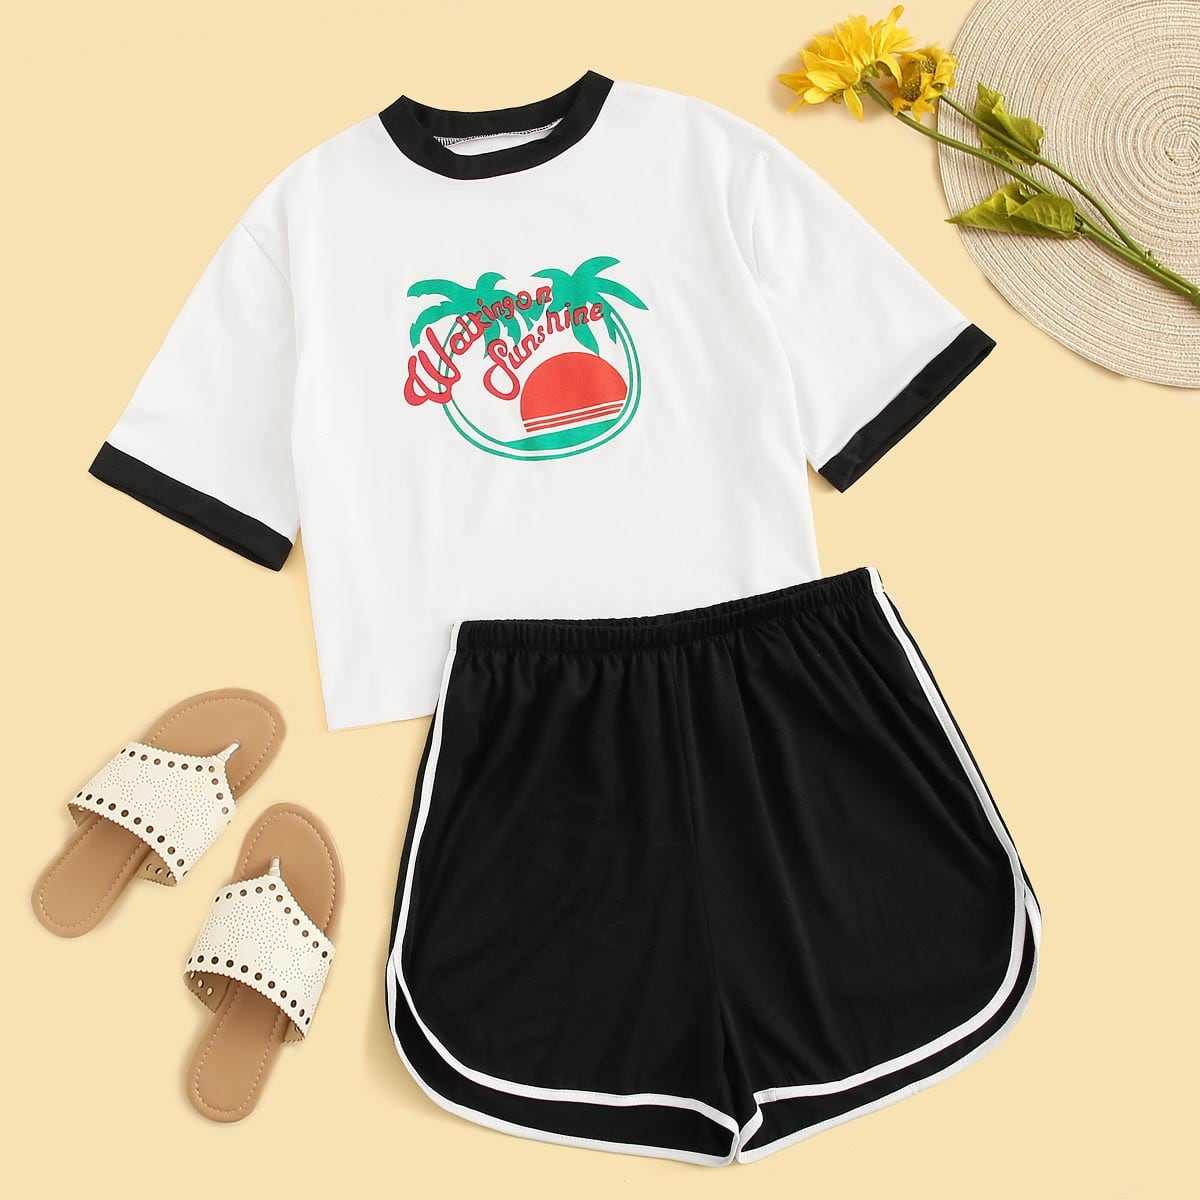 Plus Letter Print Contrast Binding Tee With Dolphin Shorts in Black and White by ROMWE on GOOFASH